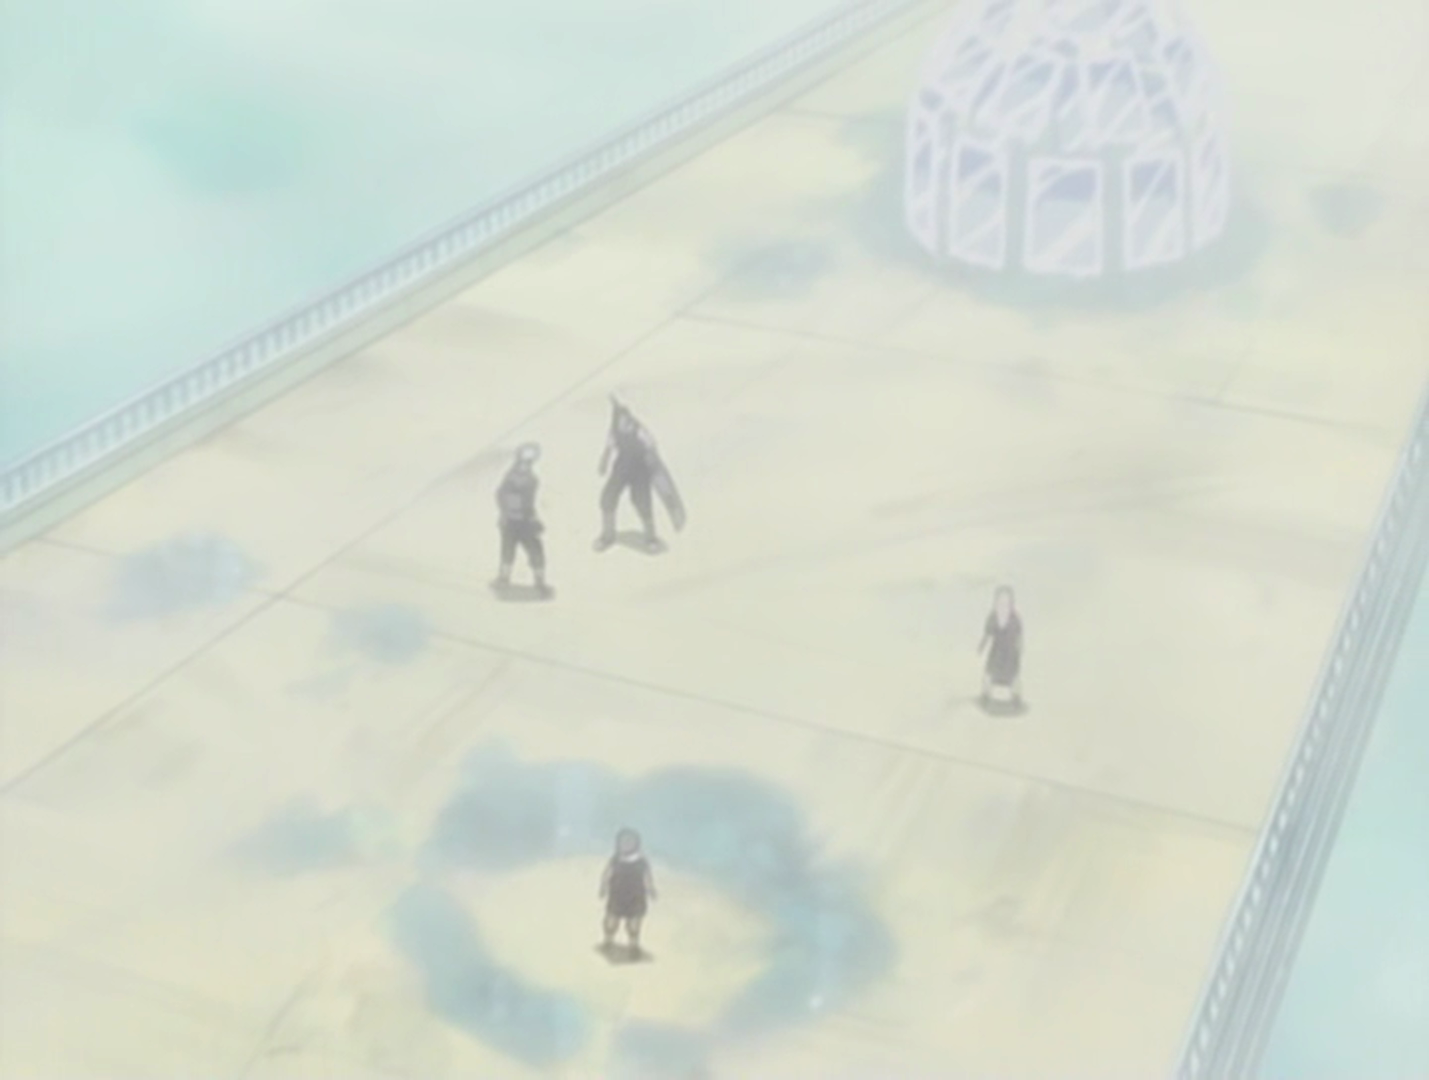 http://vignette1.wikia.nocookie.net/naruto/images/4/4c/Zabuza_Using_The_Hidden_Mist.PNG/revision/latest?cb=20150216143553